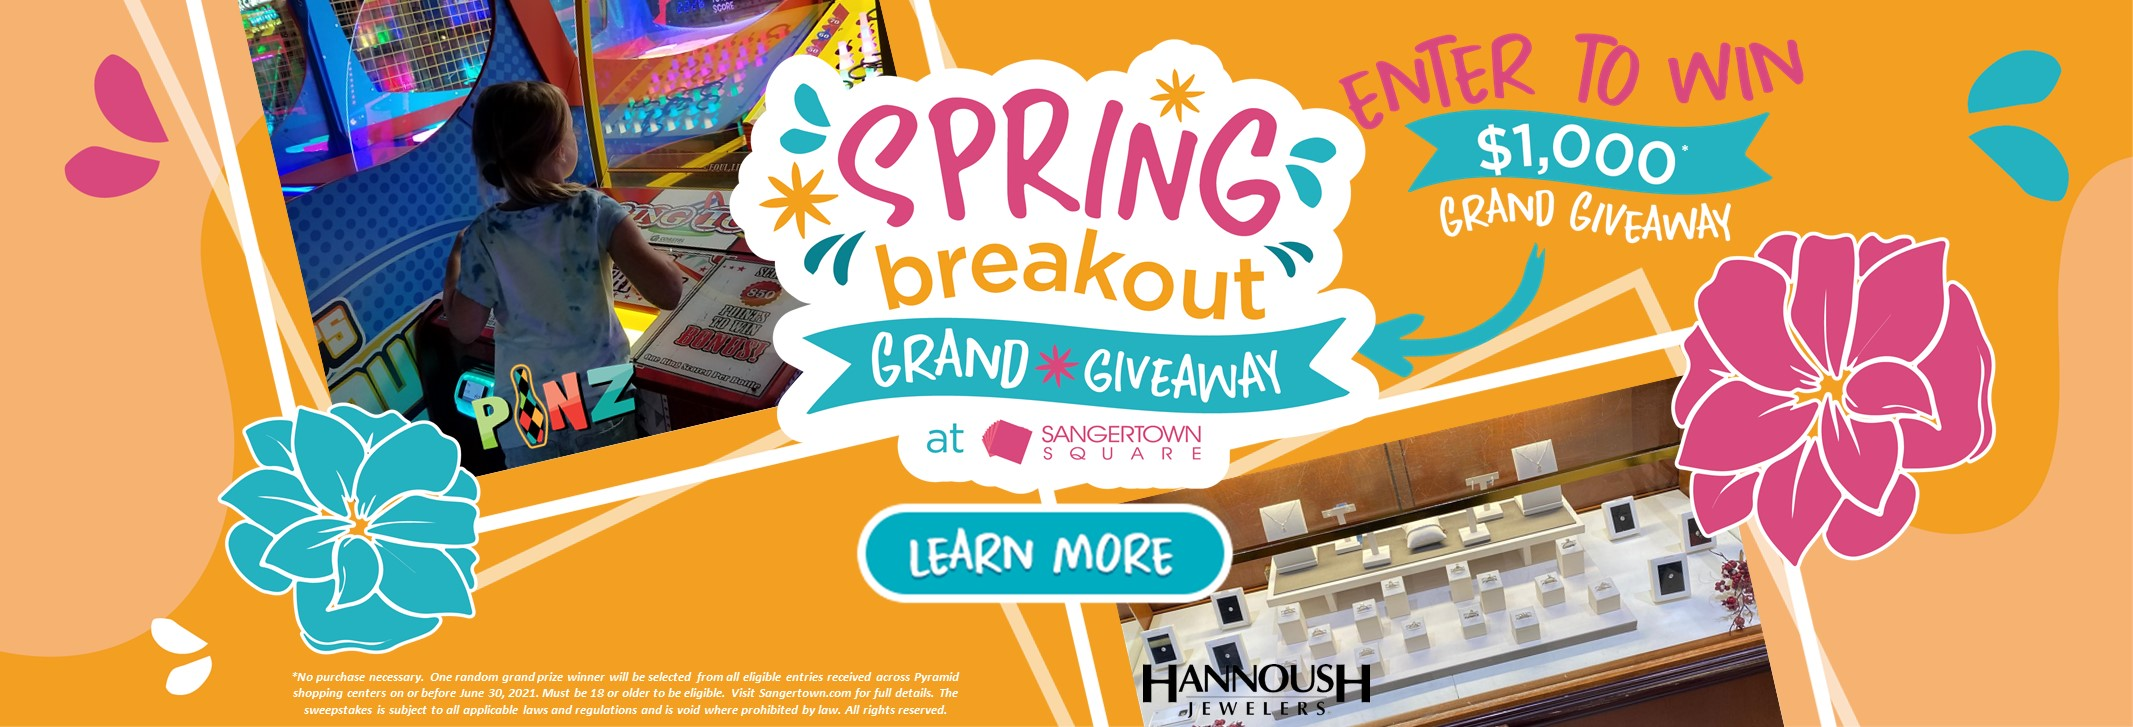 Spring Breakout Grand Giveaway